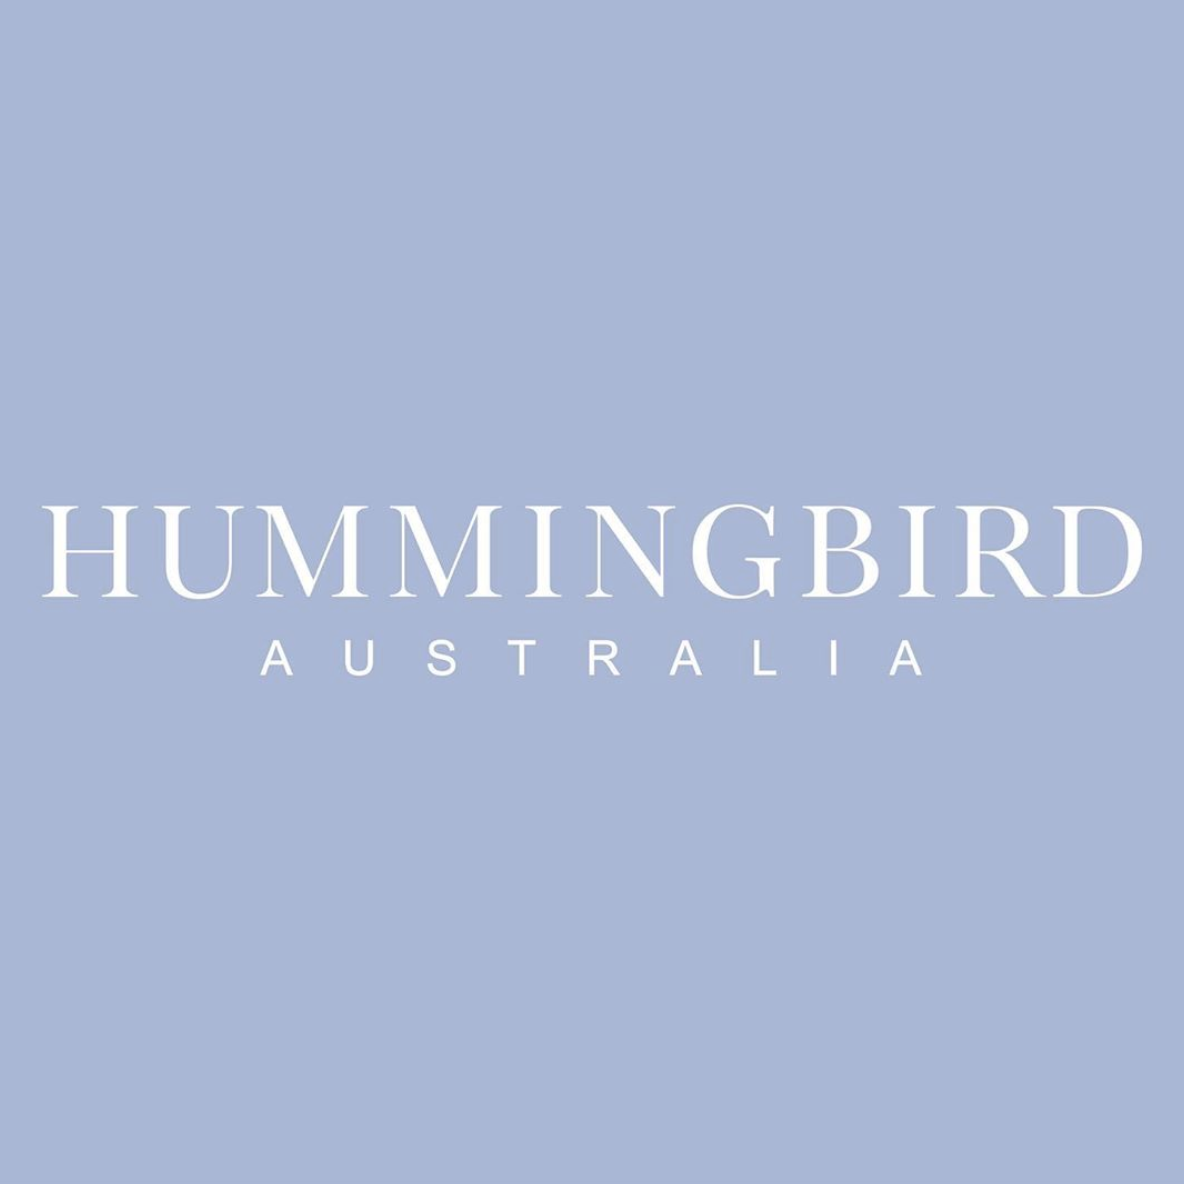 HUMMINGBIRD/FASHION DESIGN